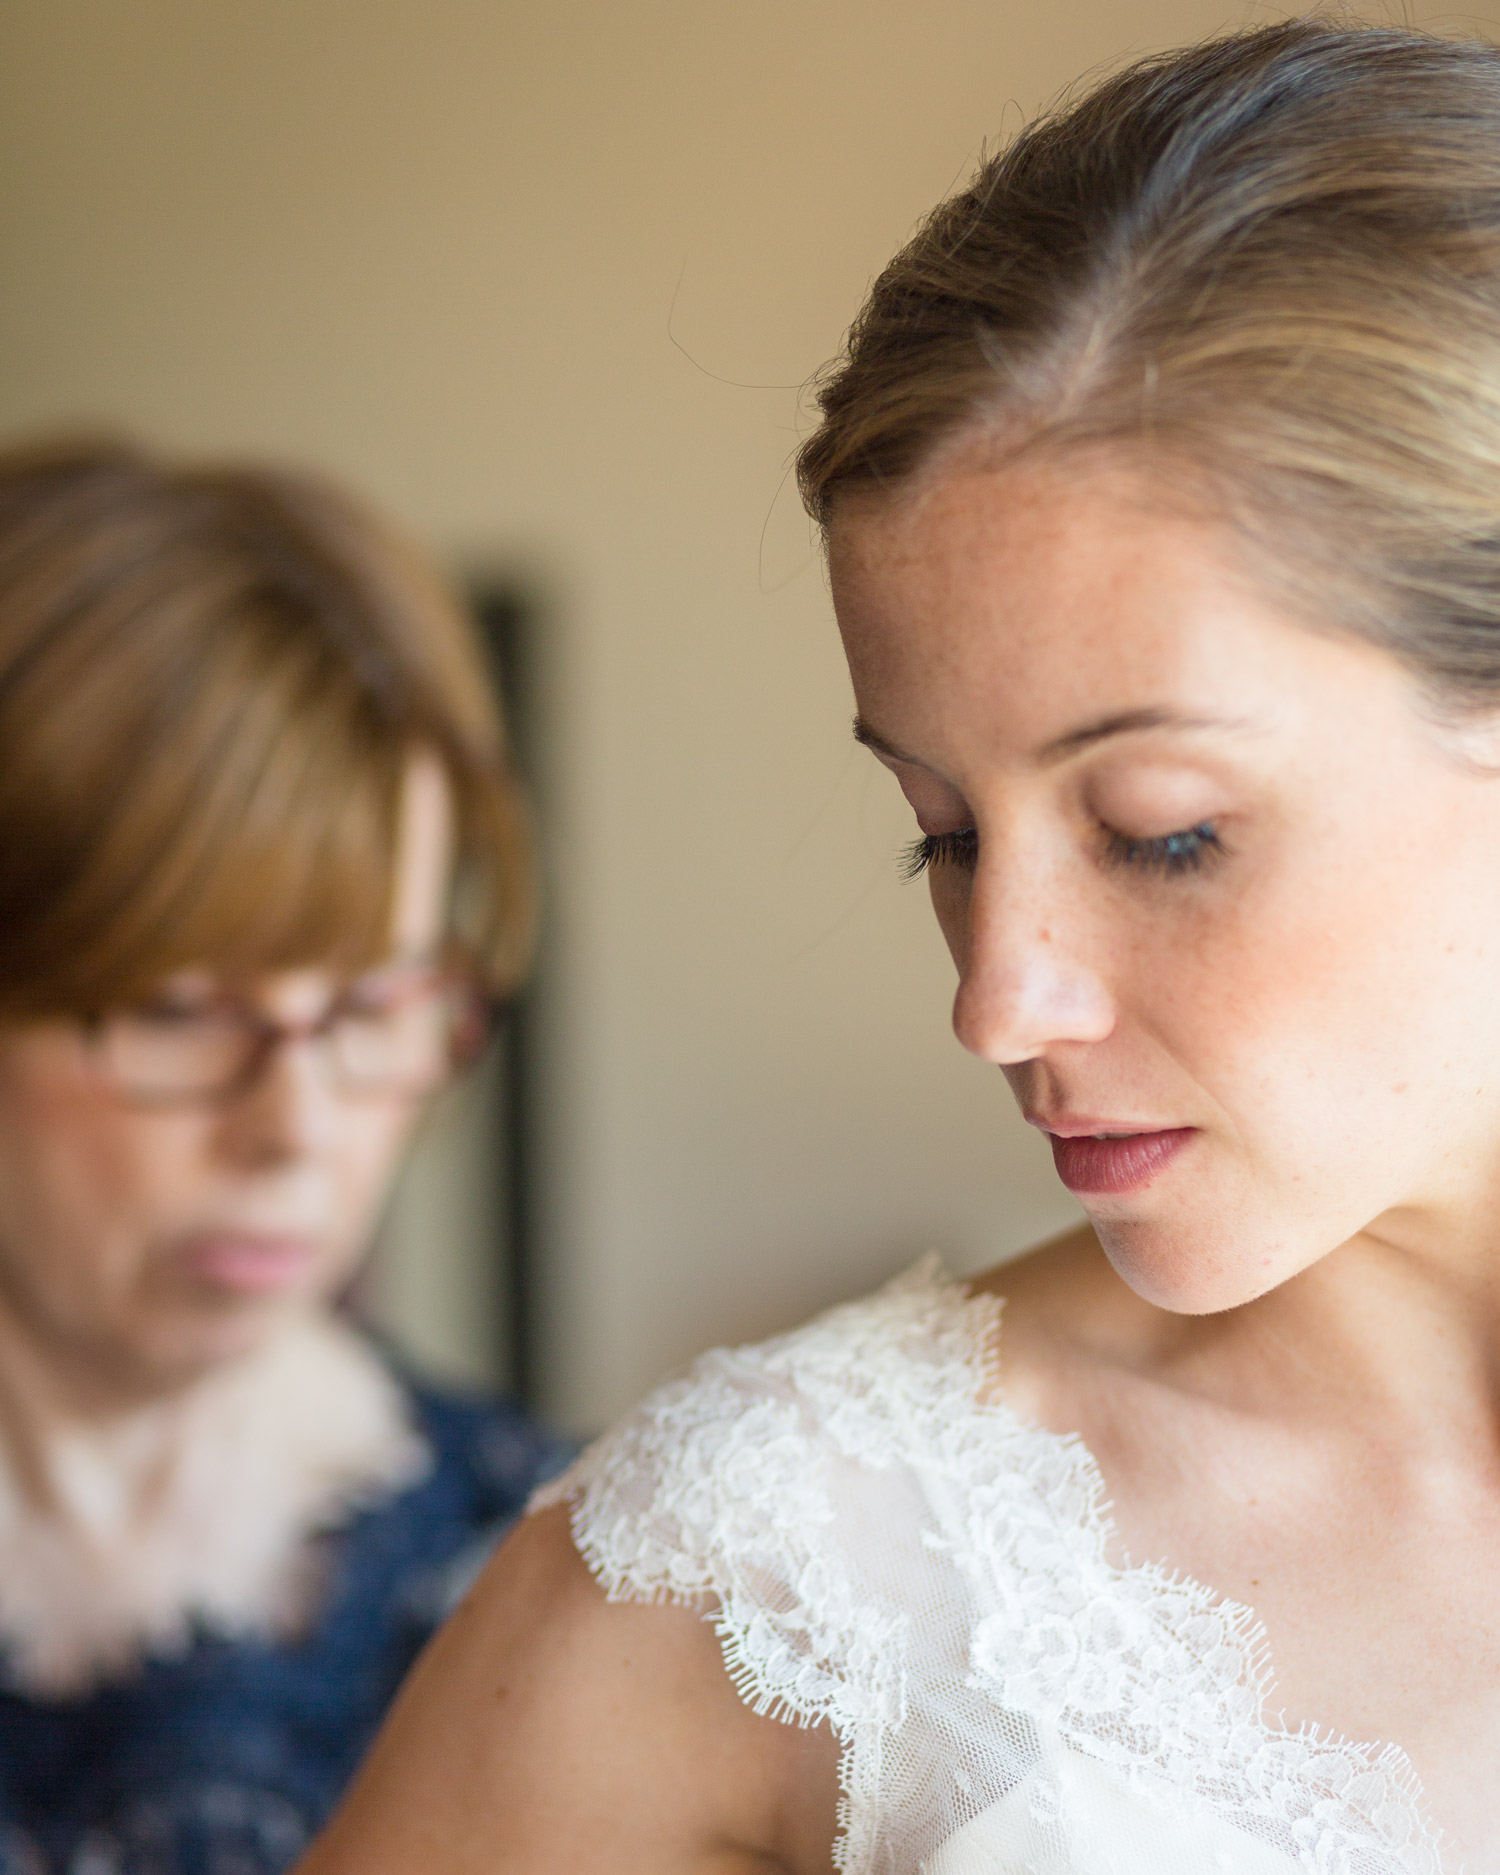 A mother helps the bride get dressed before her wedding by Vermont photographer Stina Booth